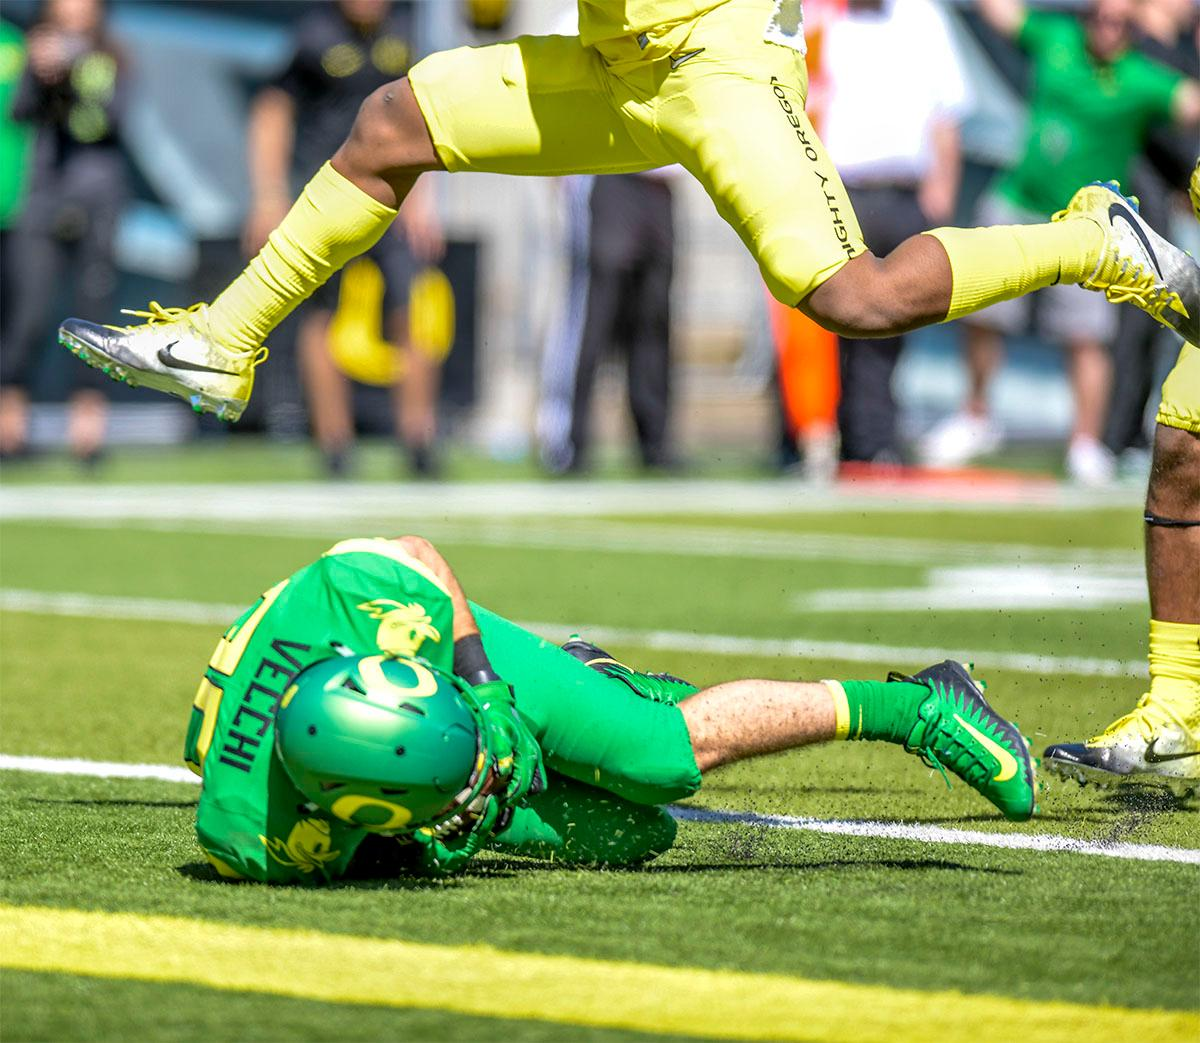 The Thunder's Jack Vecchi (#90) comes skidding to a stop in the end zone for a touchdown. The Thunder defeated the Lightning 59-24 in the Spring Game on Saturday at Autzen Stadium. Photo by August Frank